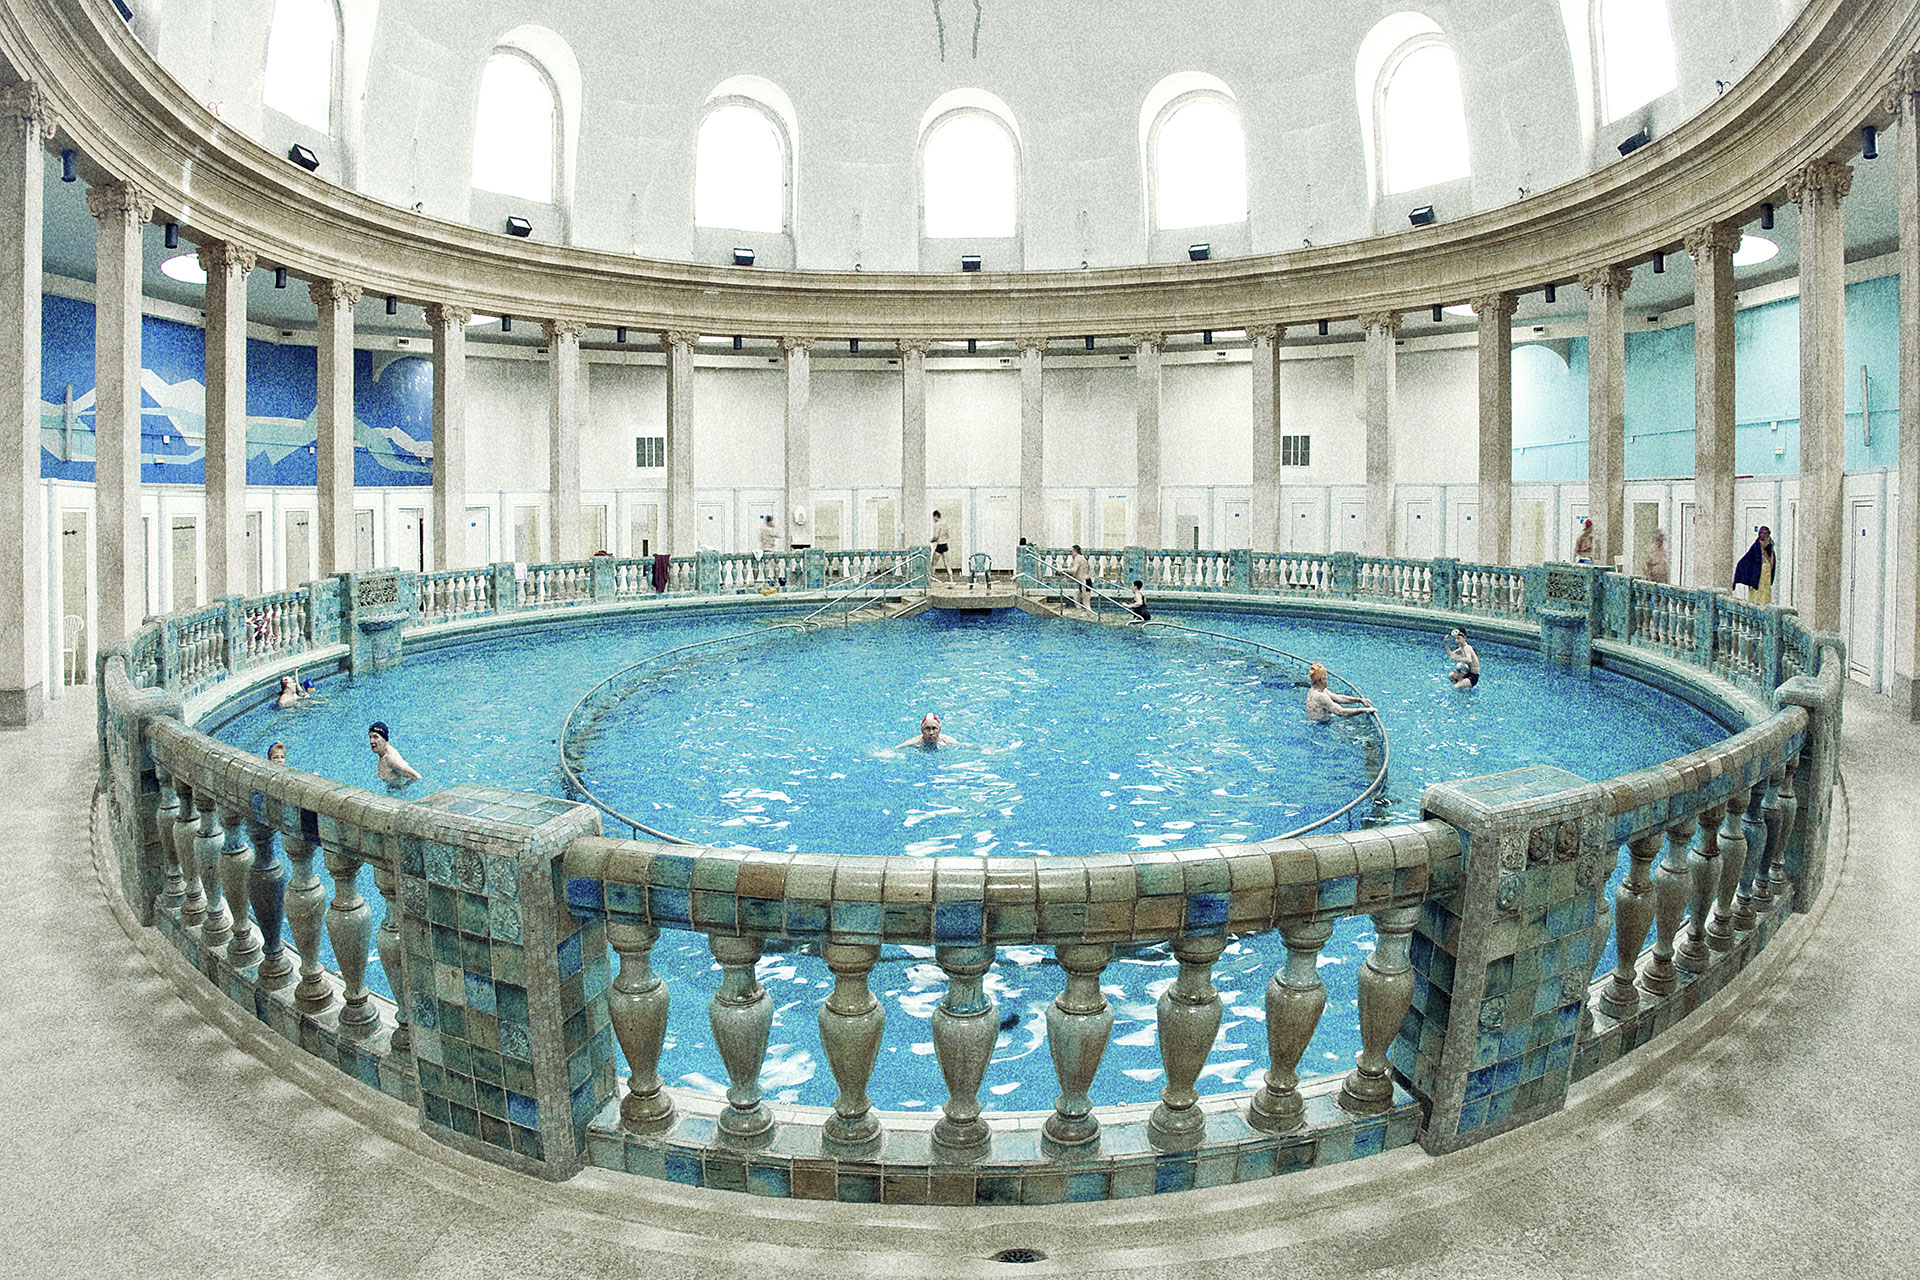 Piscine ronde nancy thermal asnieres sur seine maison - Piscine ronde nancy thermal asnieres sur seine ...